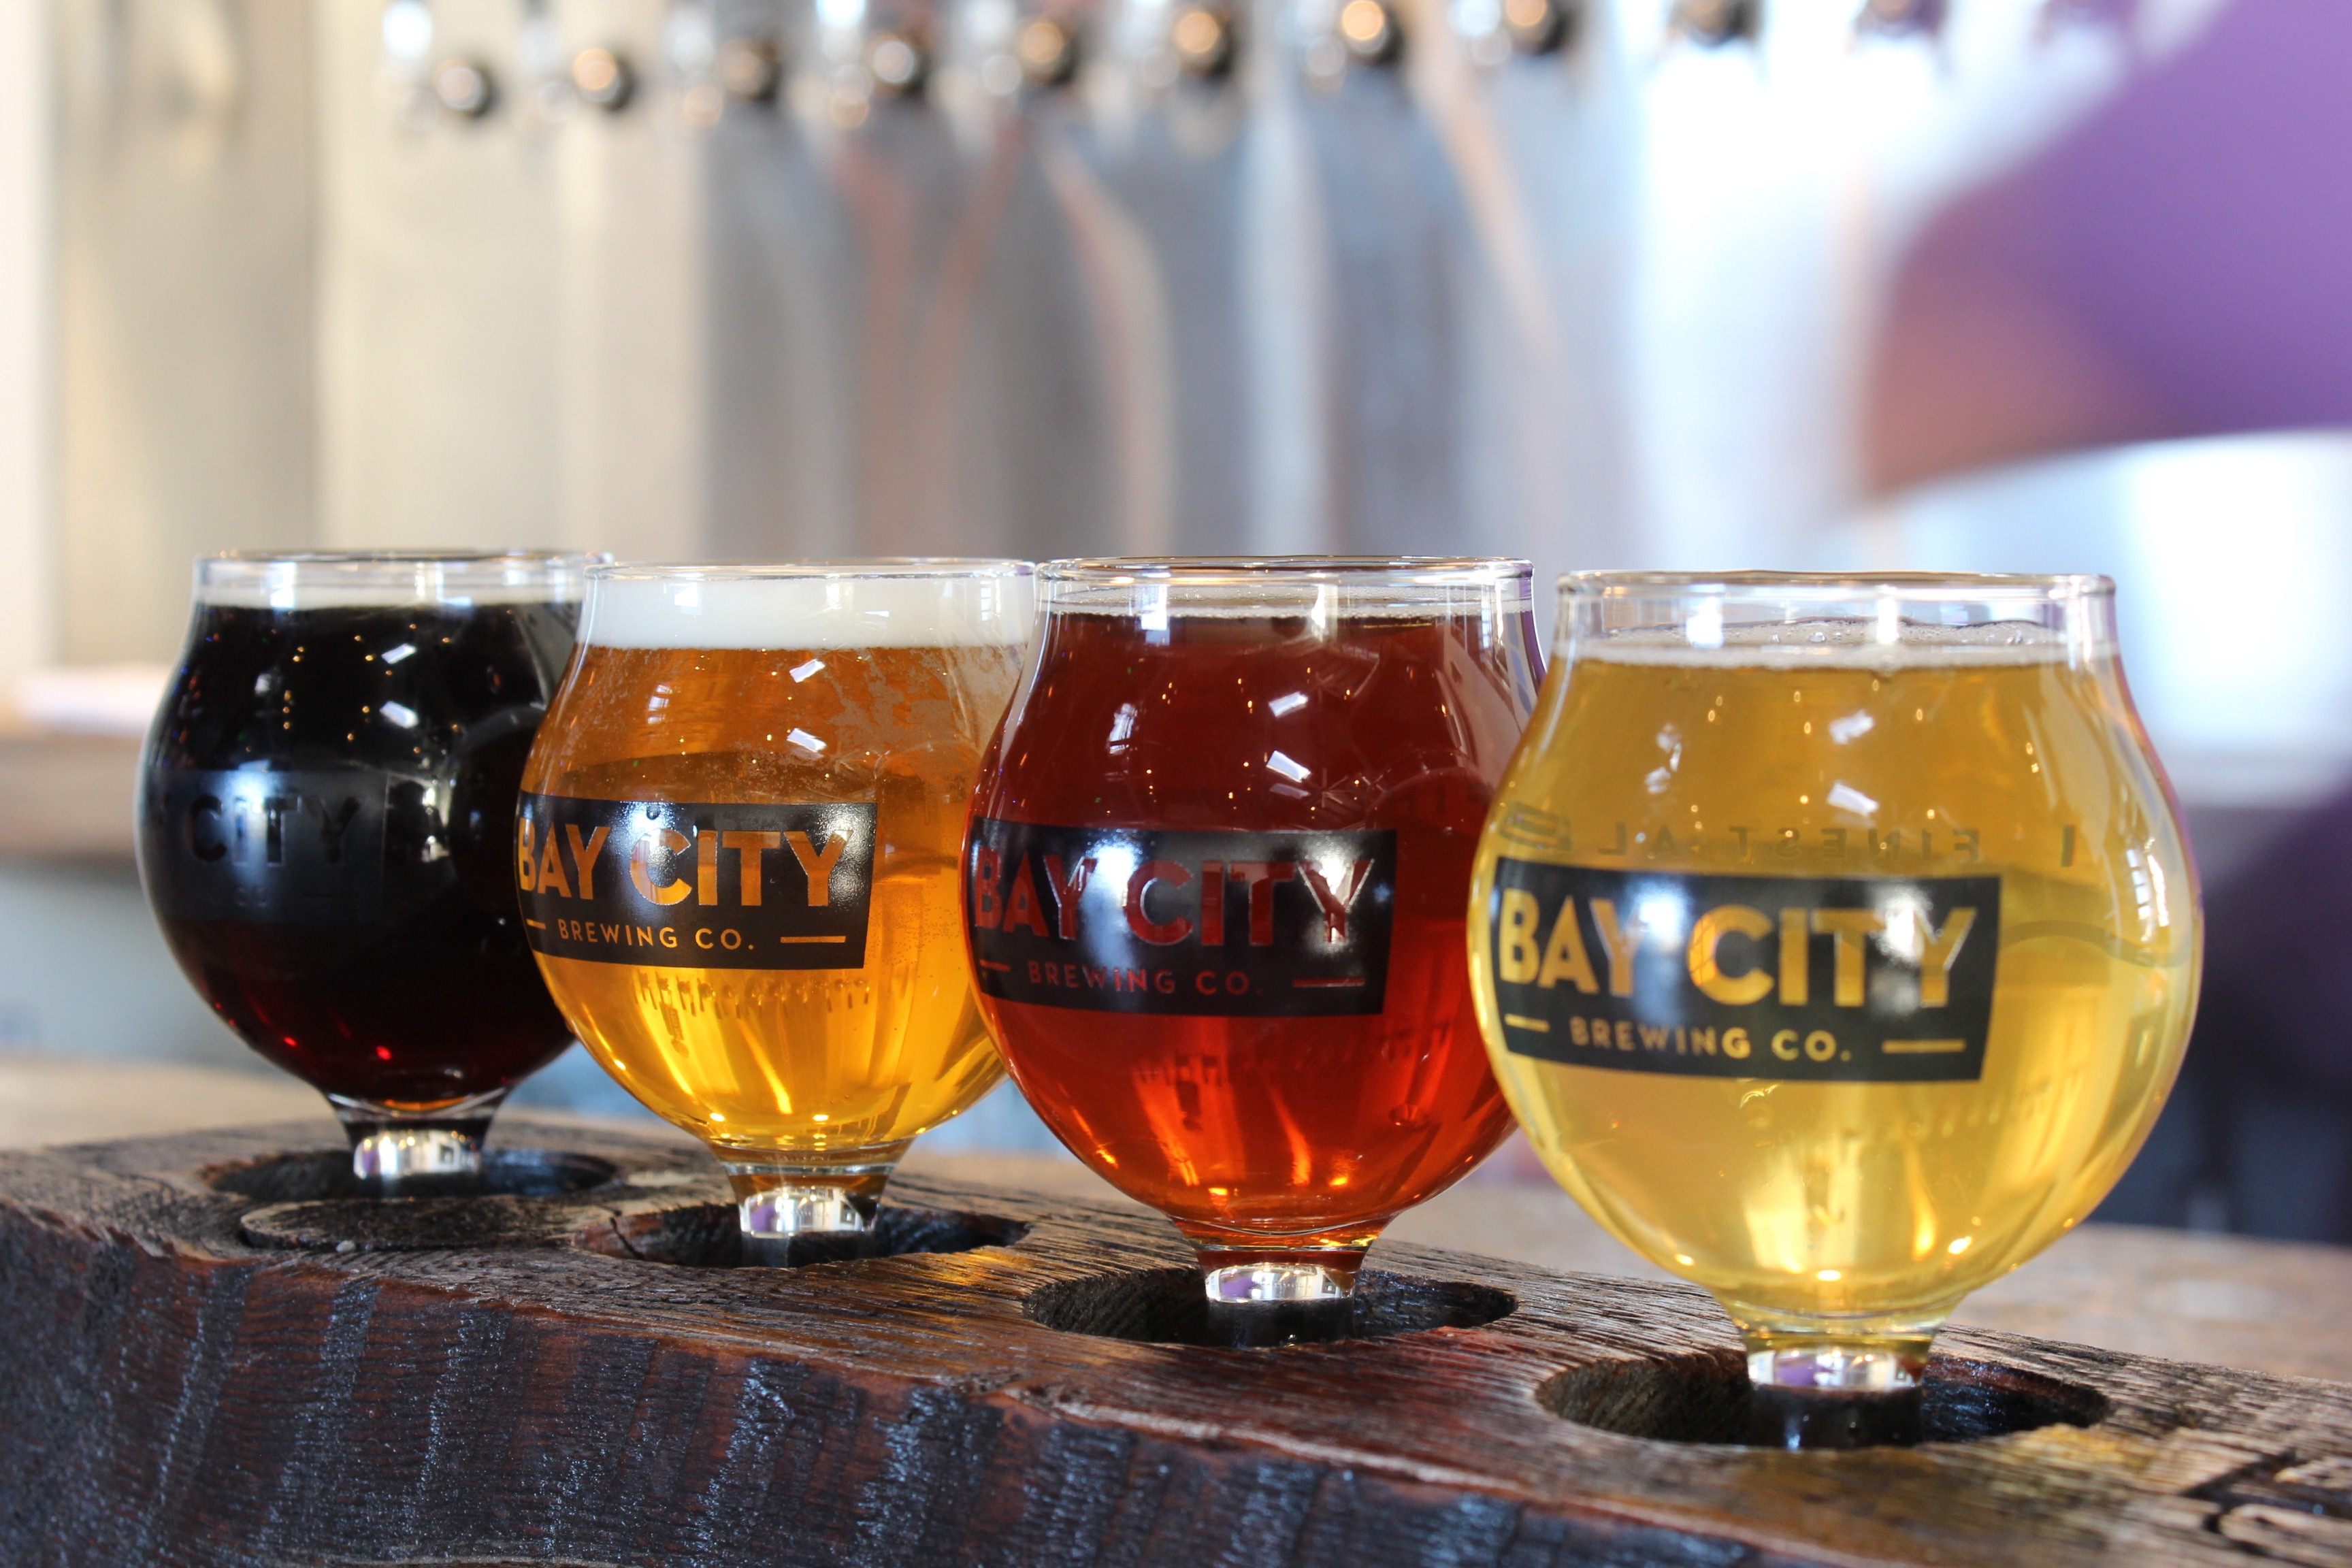 Bay City Brewing Tasters